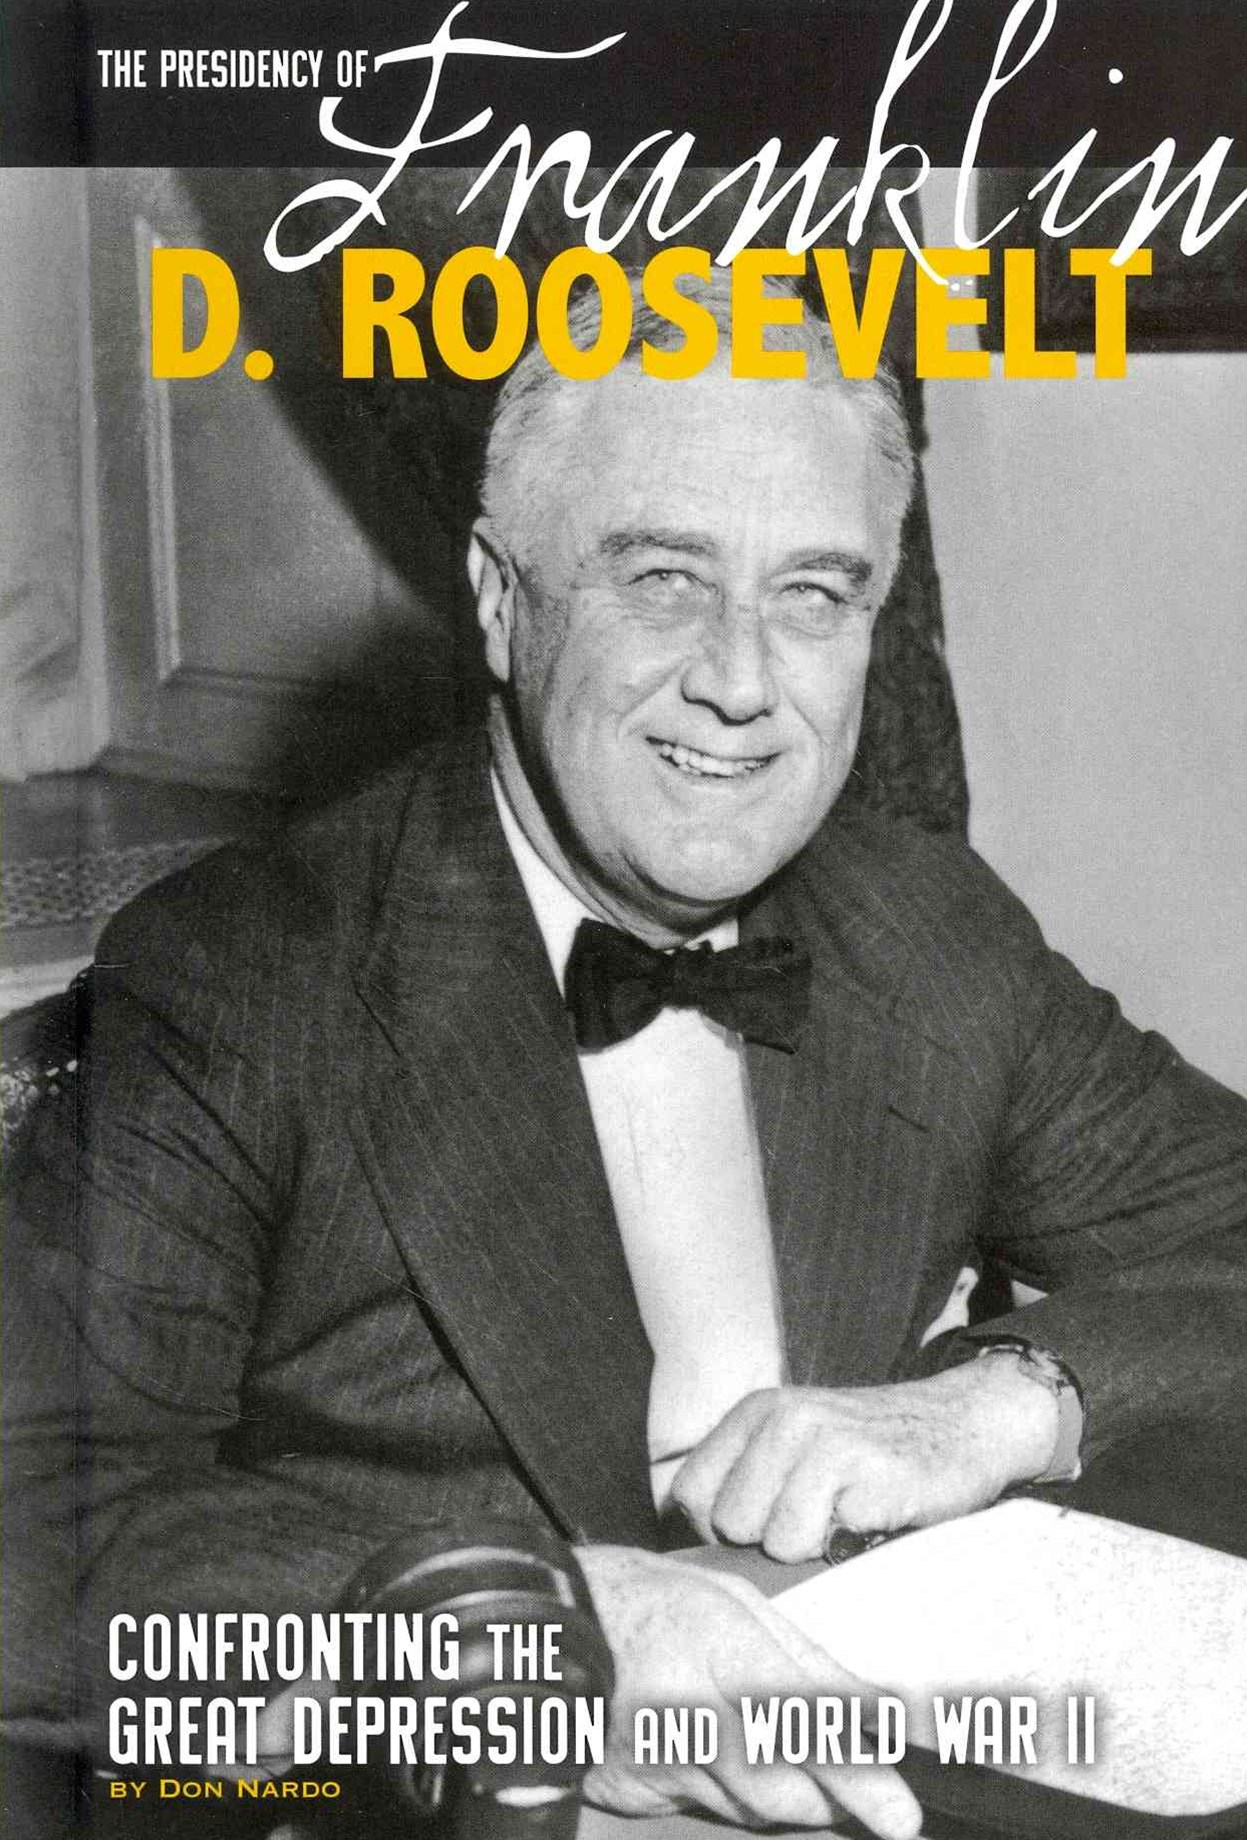 The Presidency of Franklin D. Roosevelt